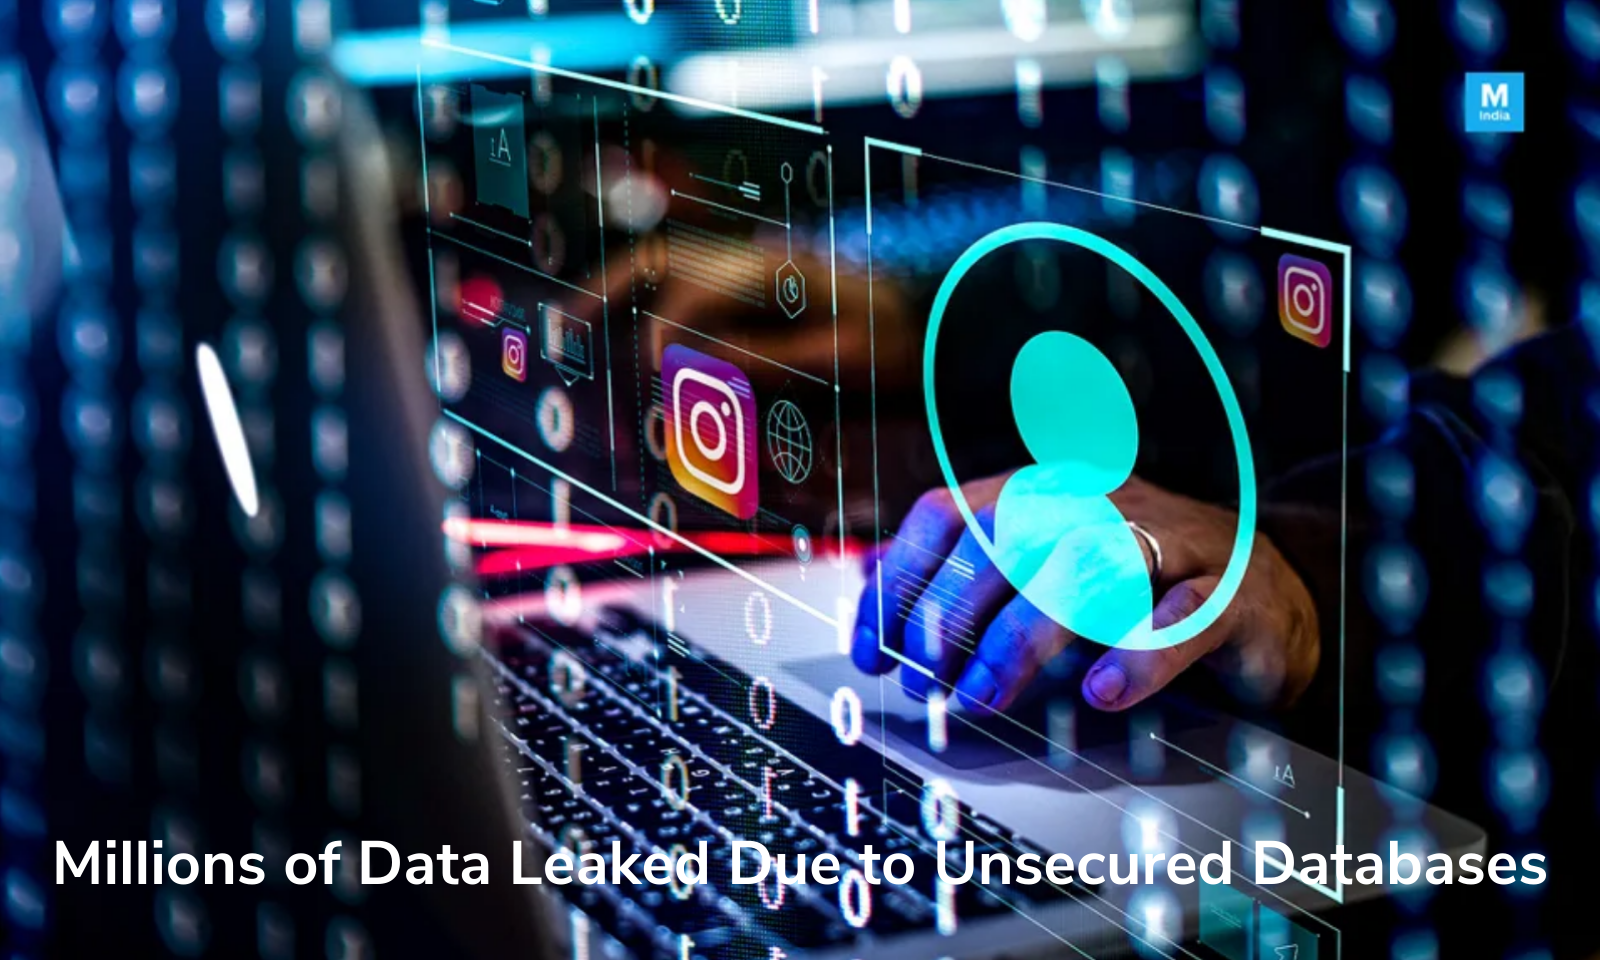 Millions of Data Leaked Due to Unsecured Databases